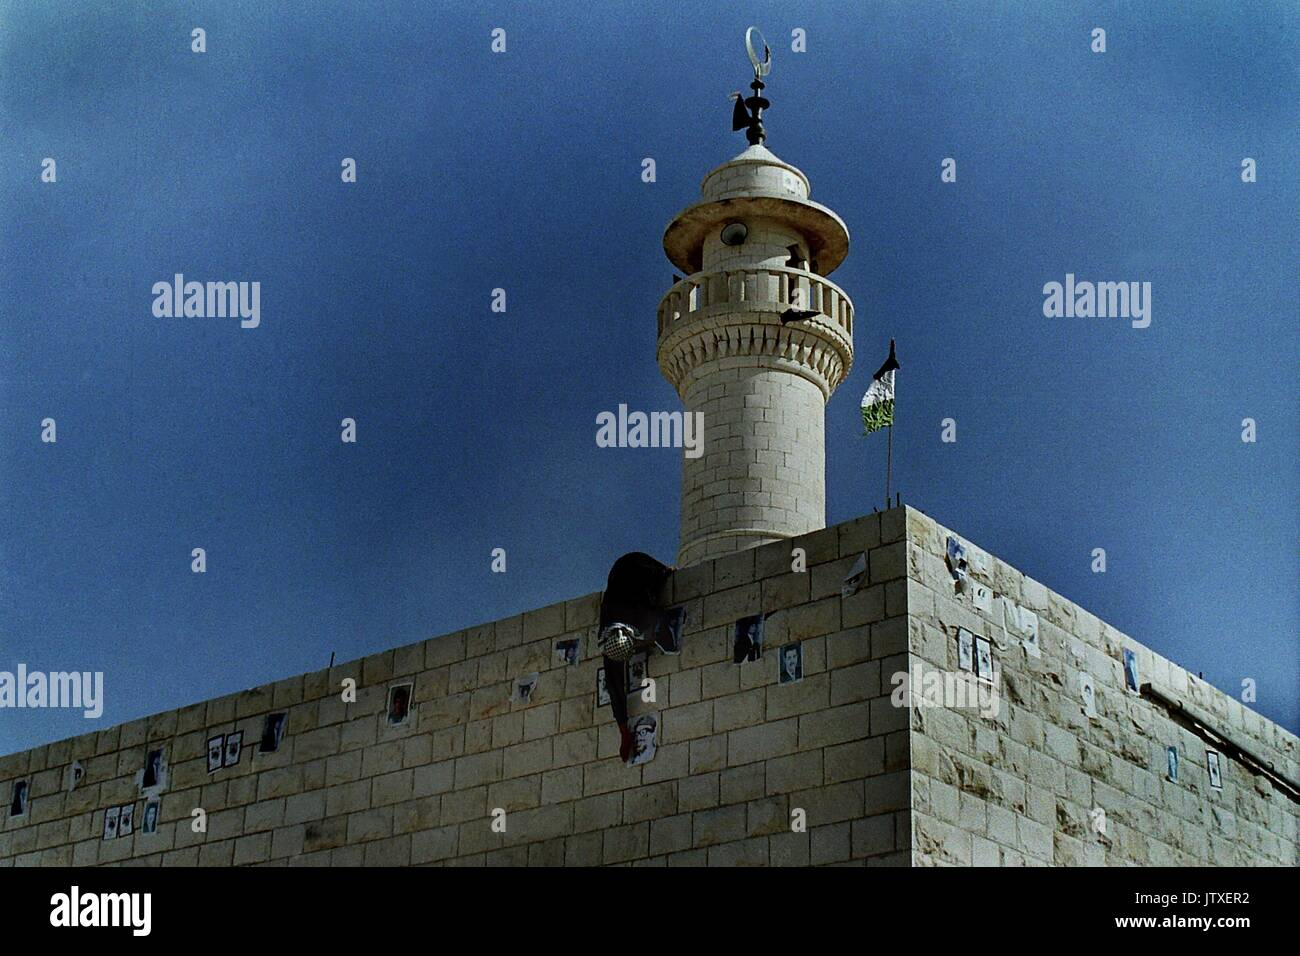 Militant Palestinians pictured during the Intifada 1990.The Arab-Israeli conflict is a struggle over land, history and religion. It's also a dispute over who owns Jerusalem and its holy sites.  To Jews, Jerusalem, Yerushalayim, is the historical capital of the biblical Israelites. To Muslims, Al Quds or Bayt al-Maqdis is the third holiest site in Islam. The most sensitive area is the walled old city and the holy site of Har Ha-Bayt (Temple Mount), and al-Haram al-Sharif (The Noble Enclosure), the al-Aqsa Mosque and the Dome of the Rock The transfer of rule over Jerusalem since the end of the C - Stock Image